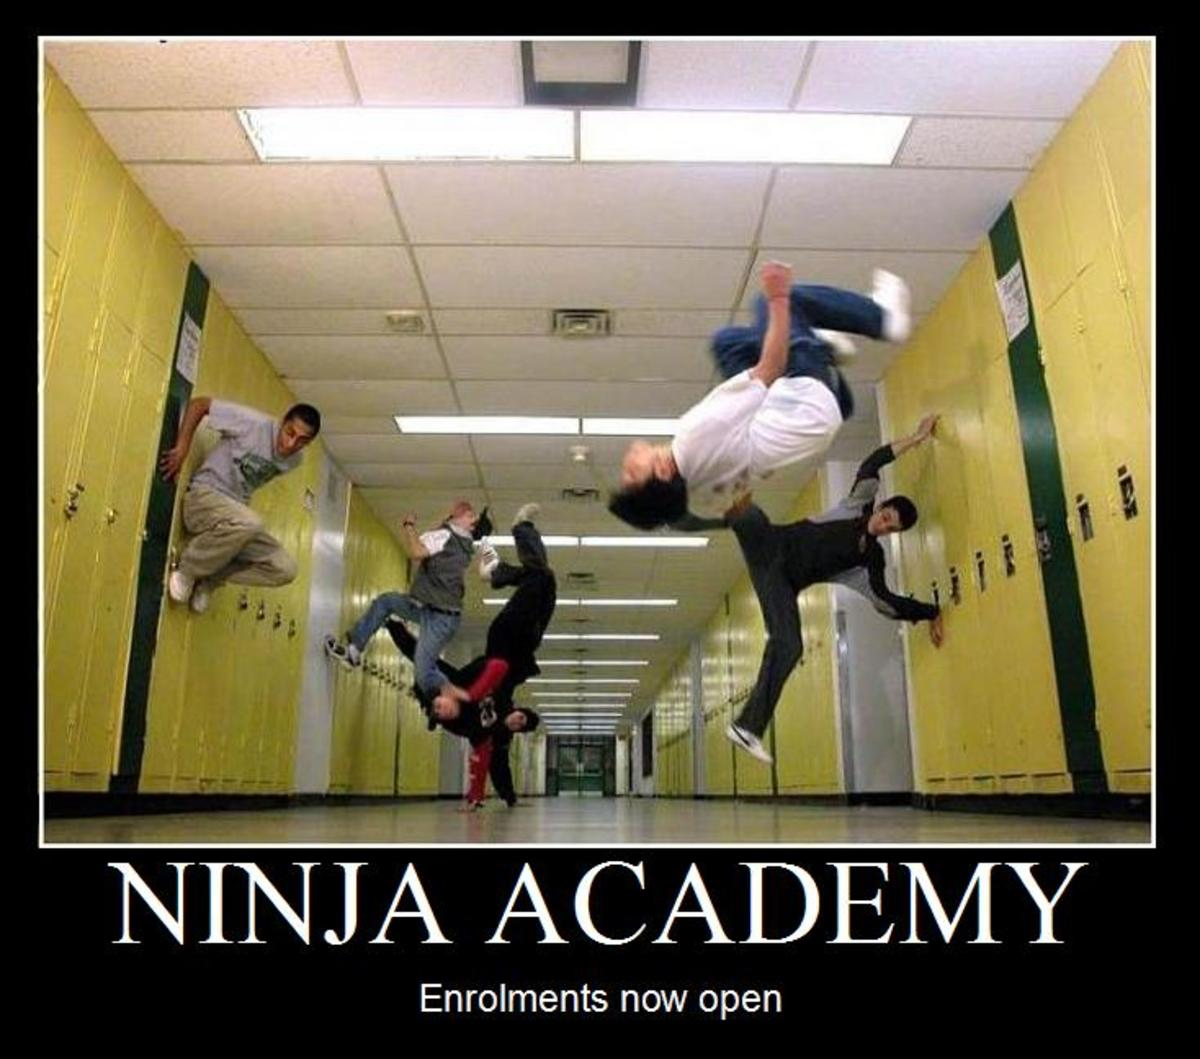 Ninja Academy - Enrollment Now Open